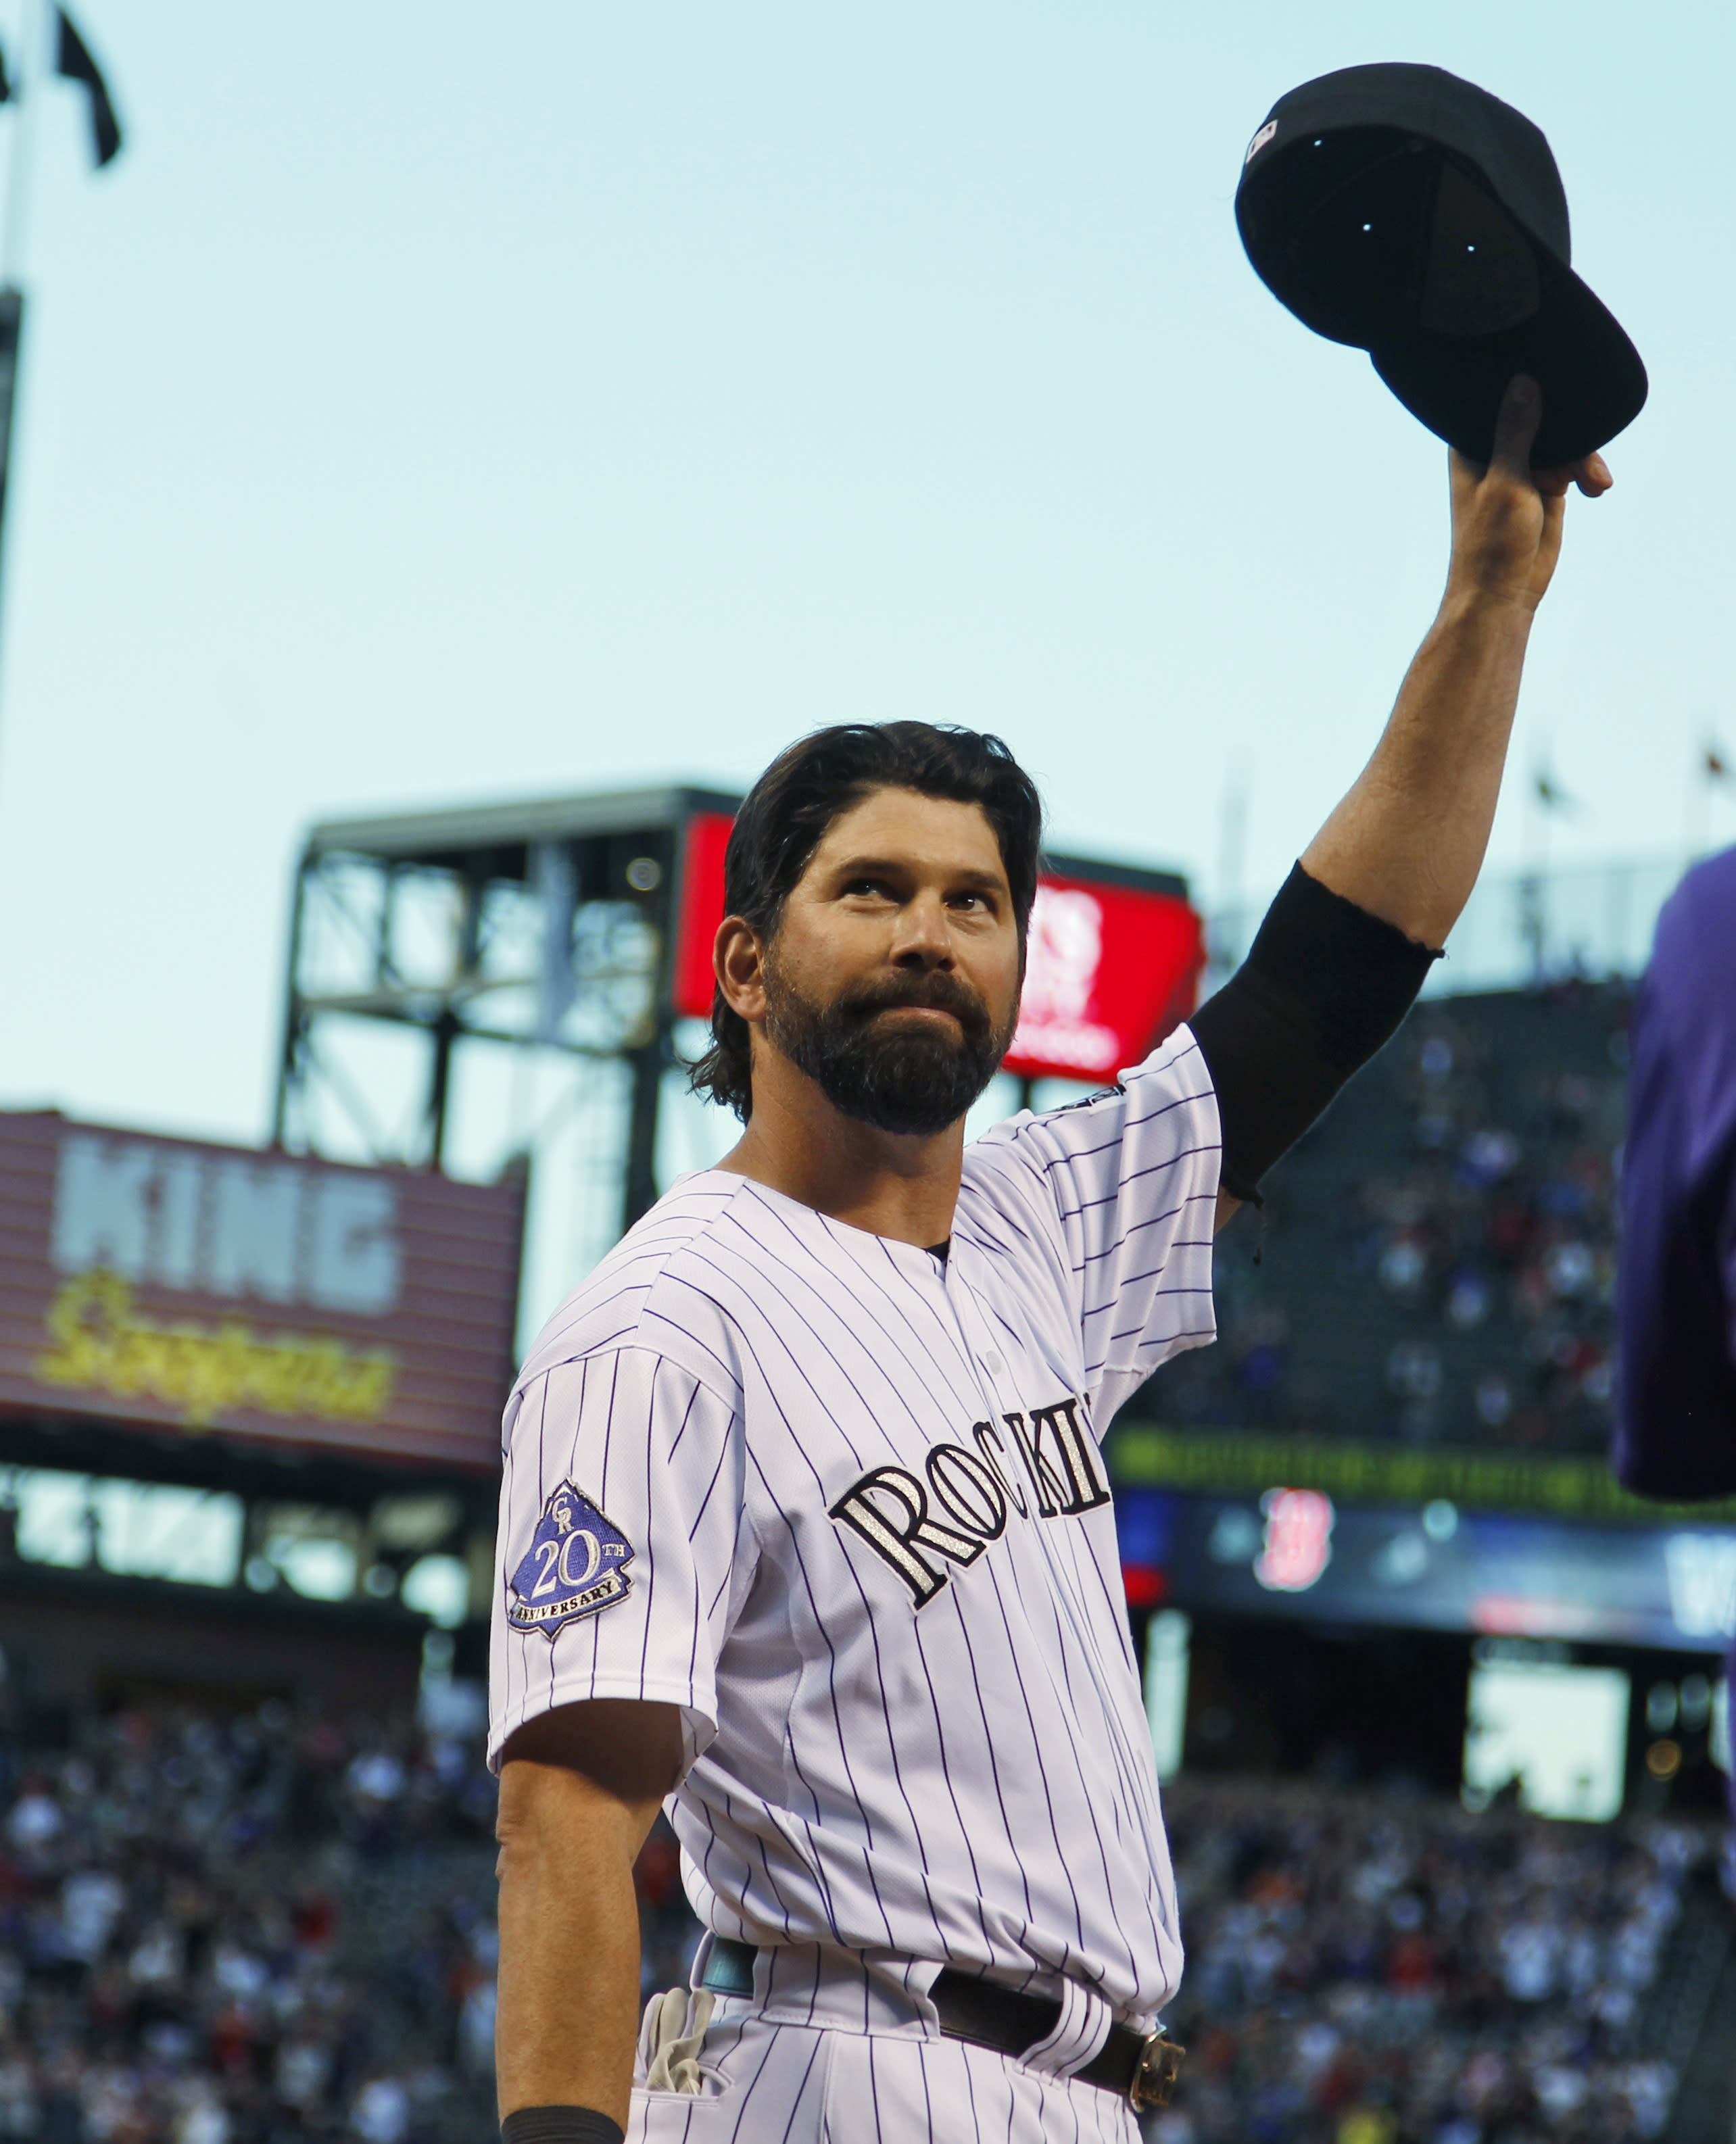 Helton homers in coors finale bosox top rockies for Todd helton